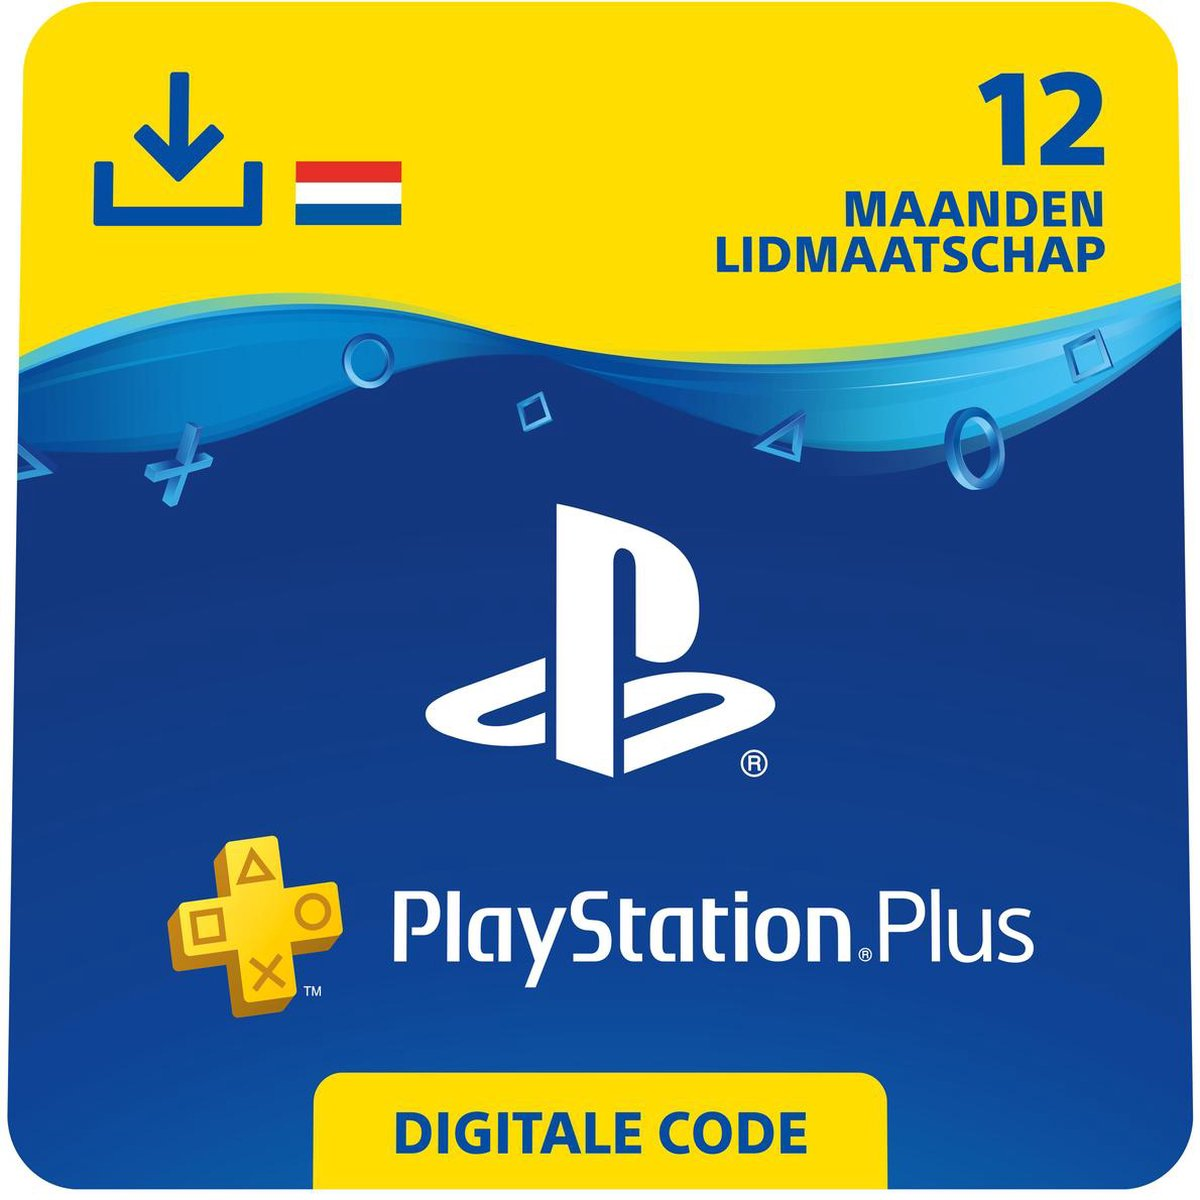 Sony Playstation Plus: 12 Maanden Lidmaatschap – PSN PlayStation Network – NL